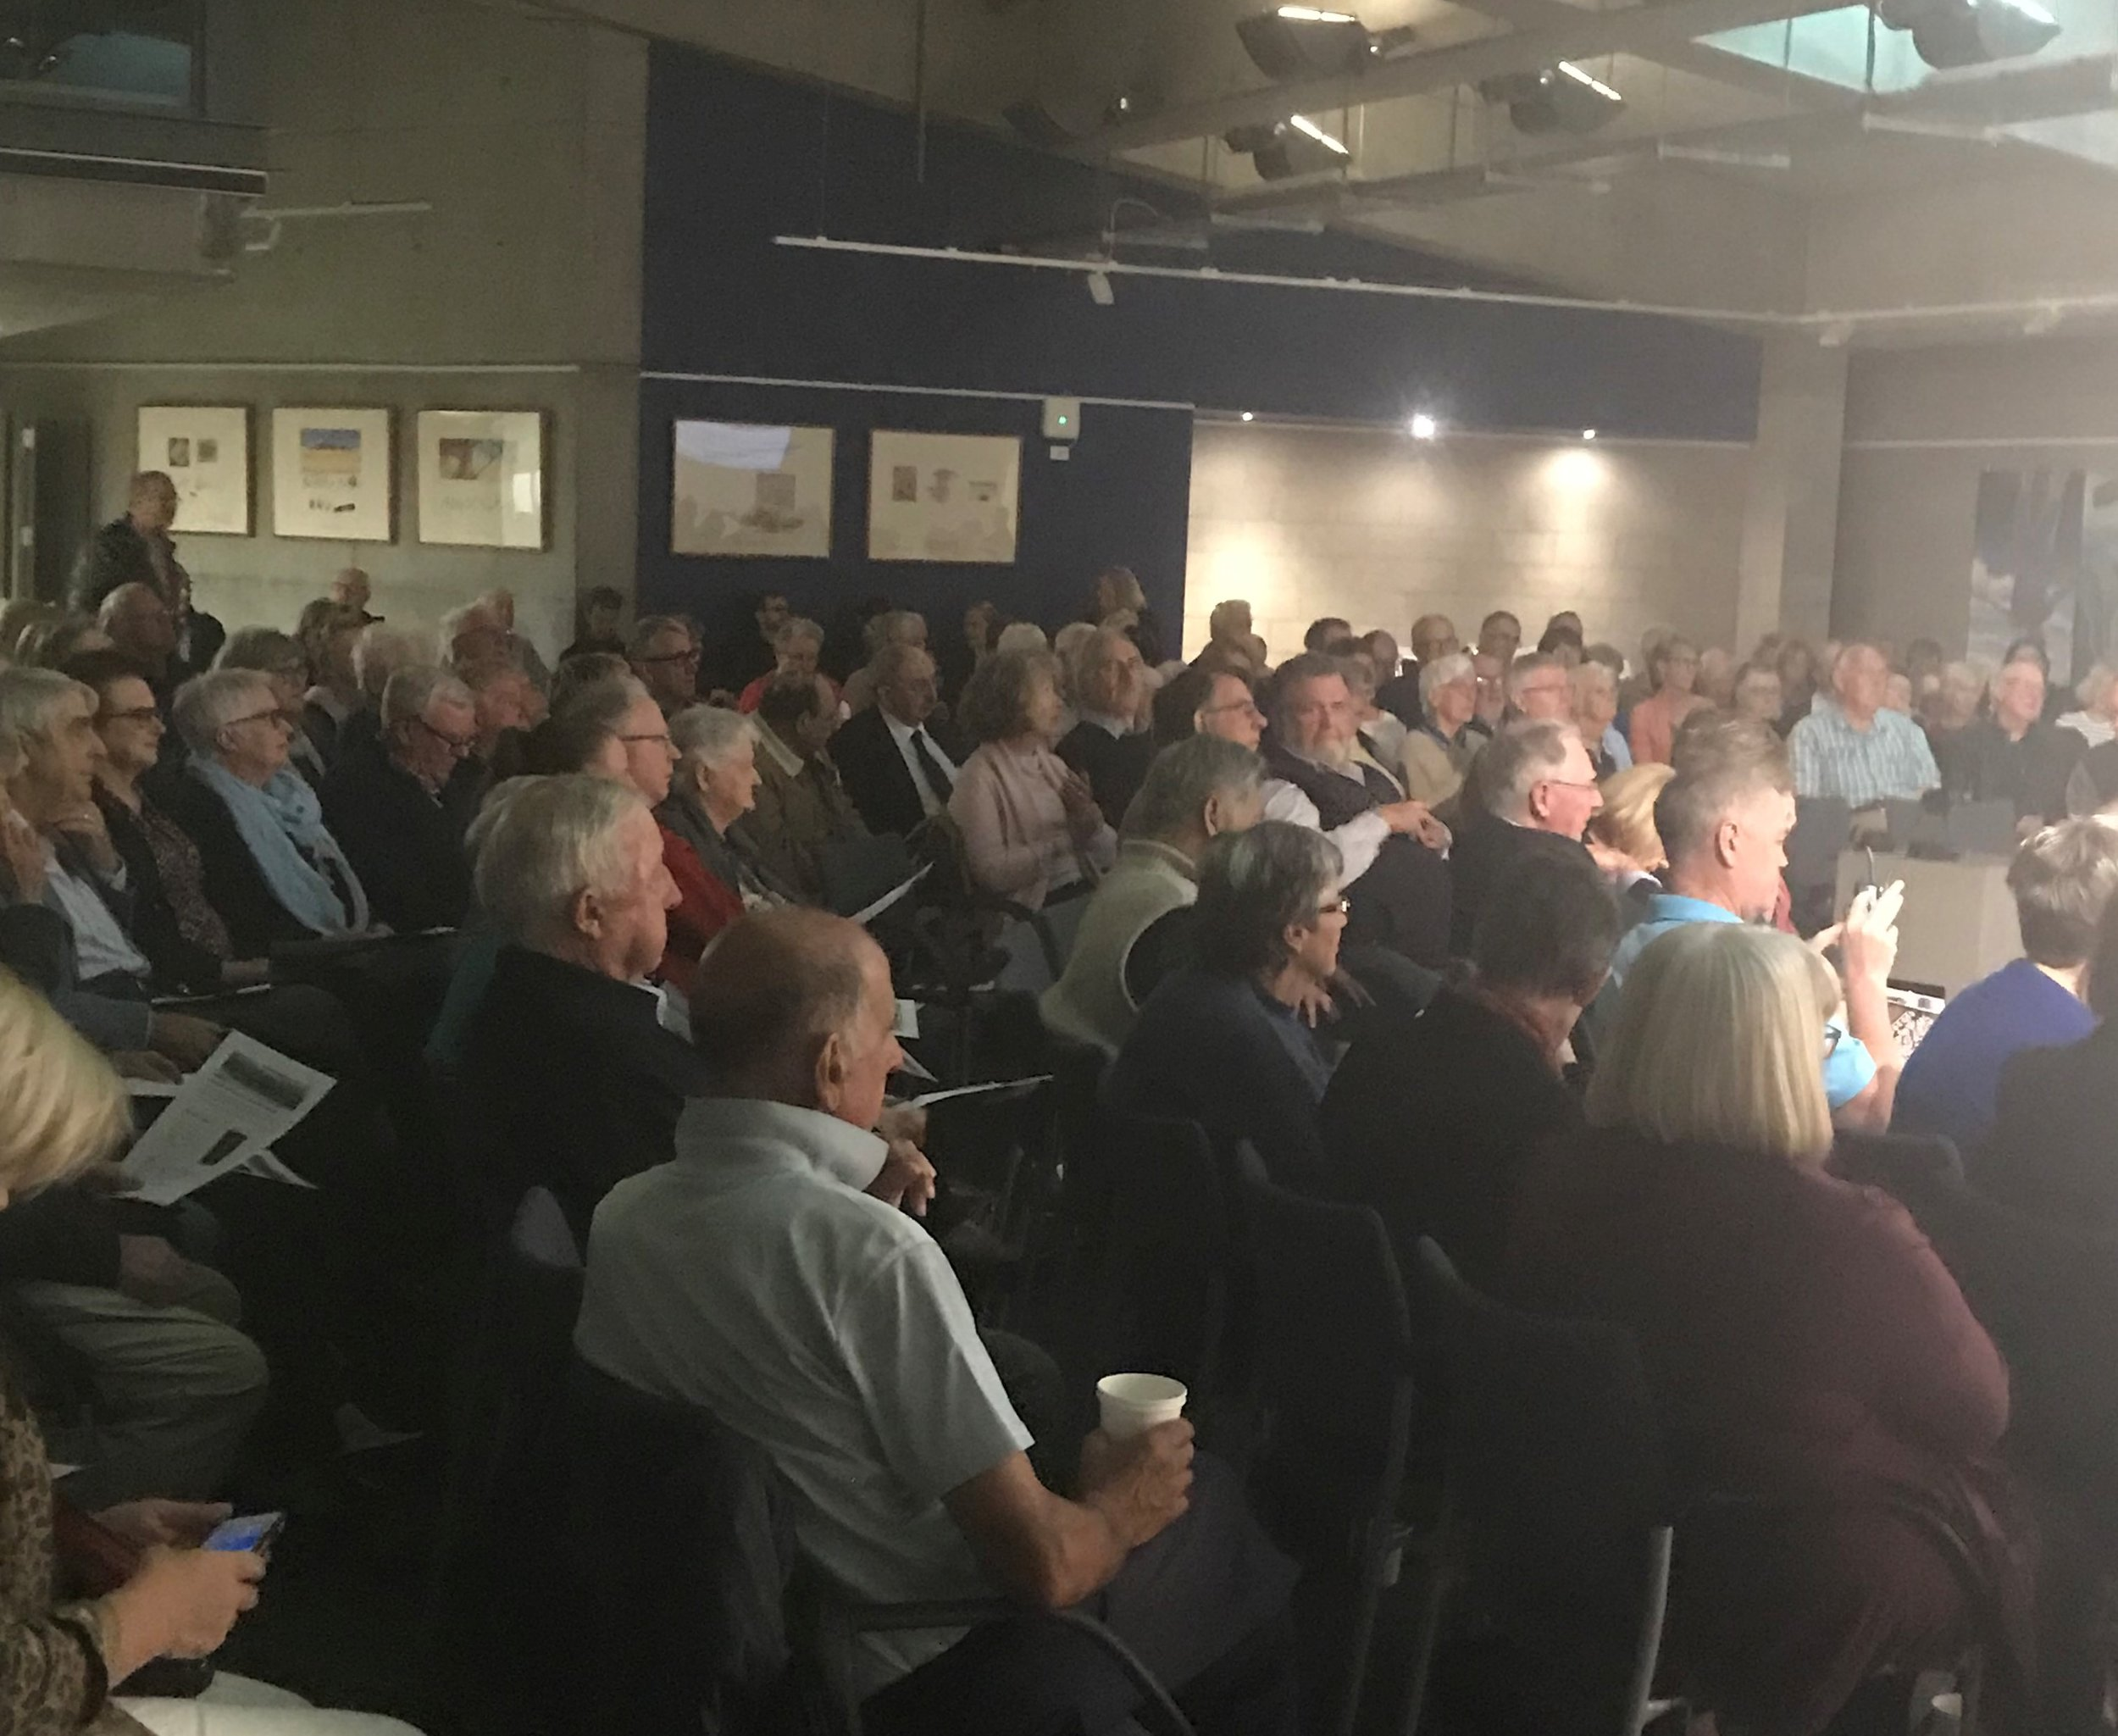 190416 - IMAGE - CC Public Forum - Audience.jpg